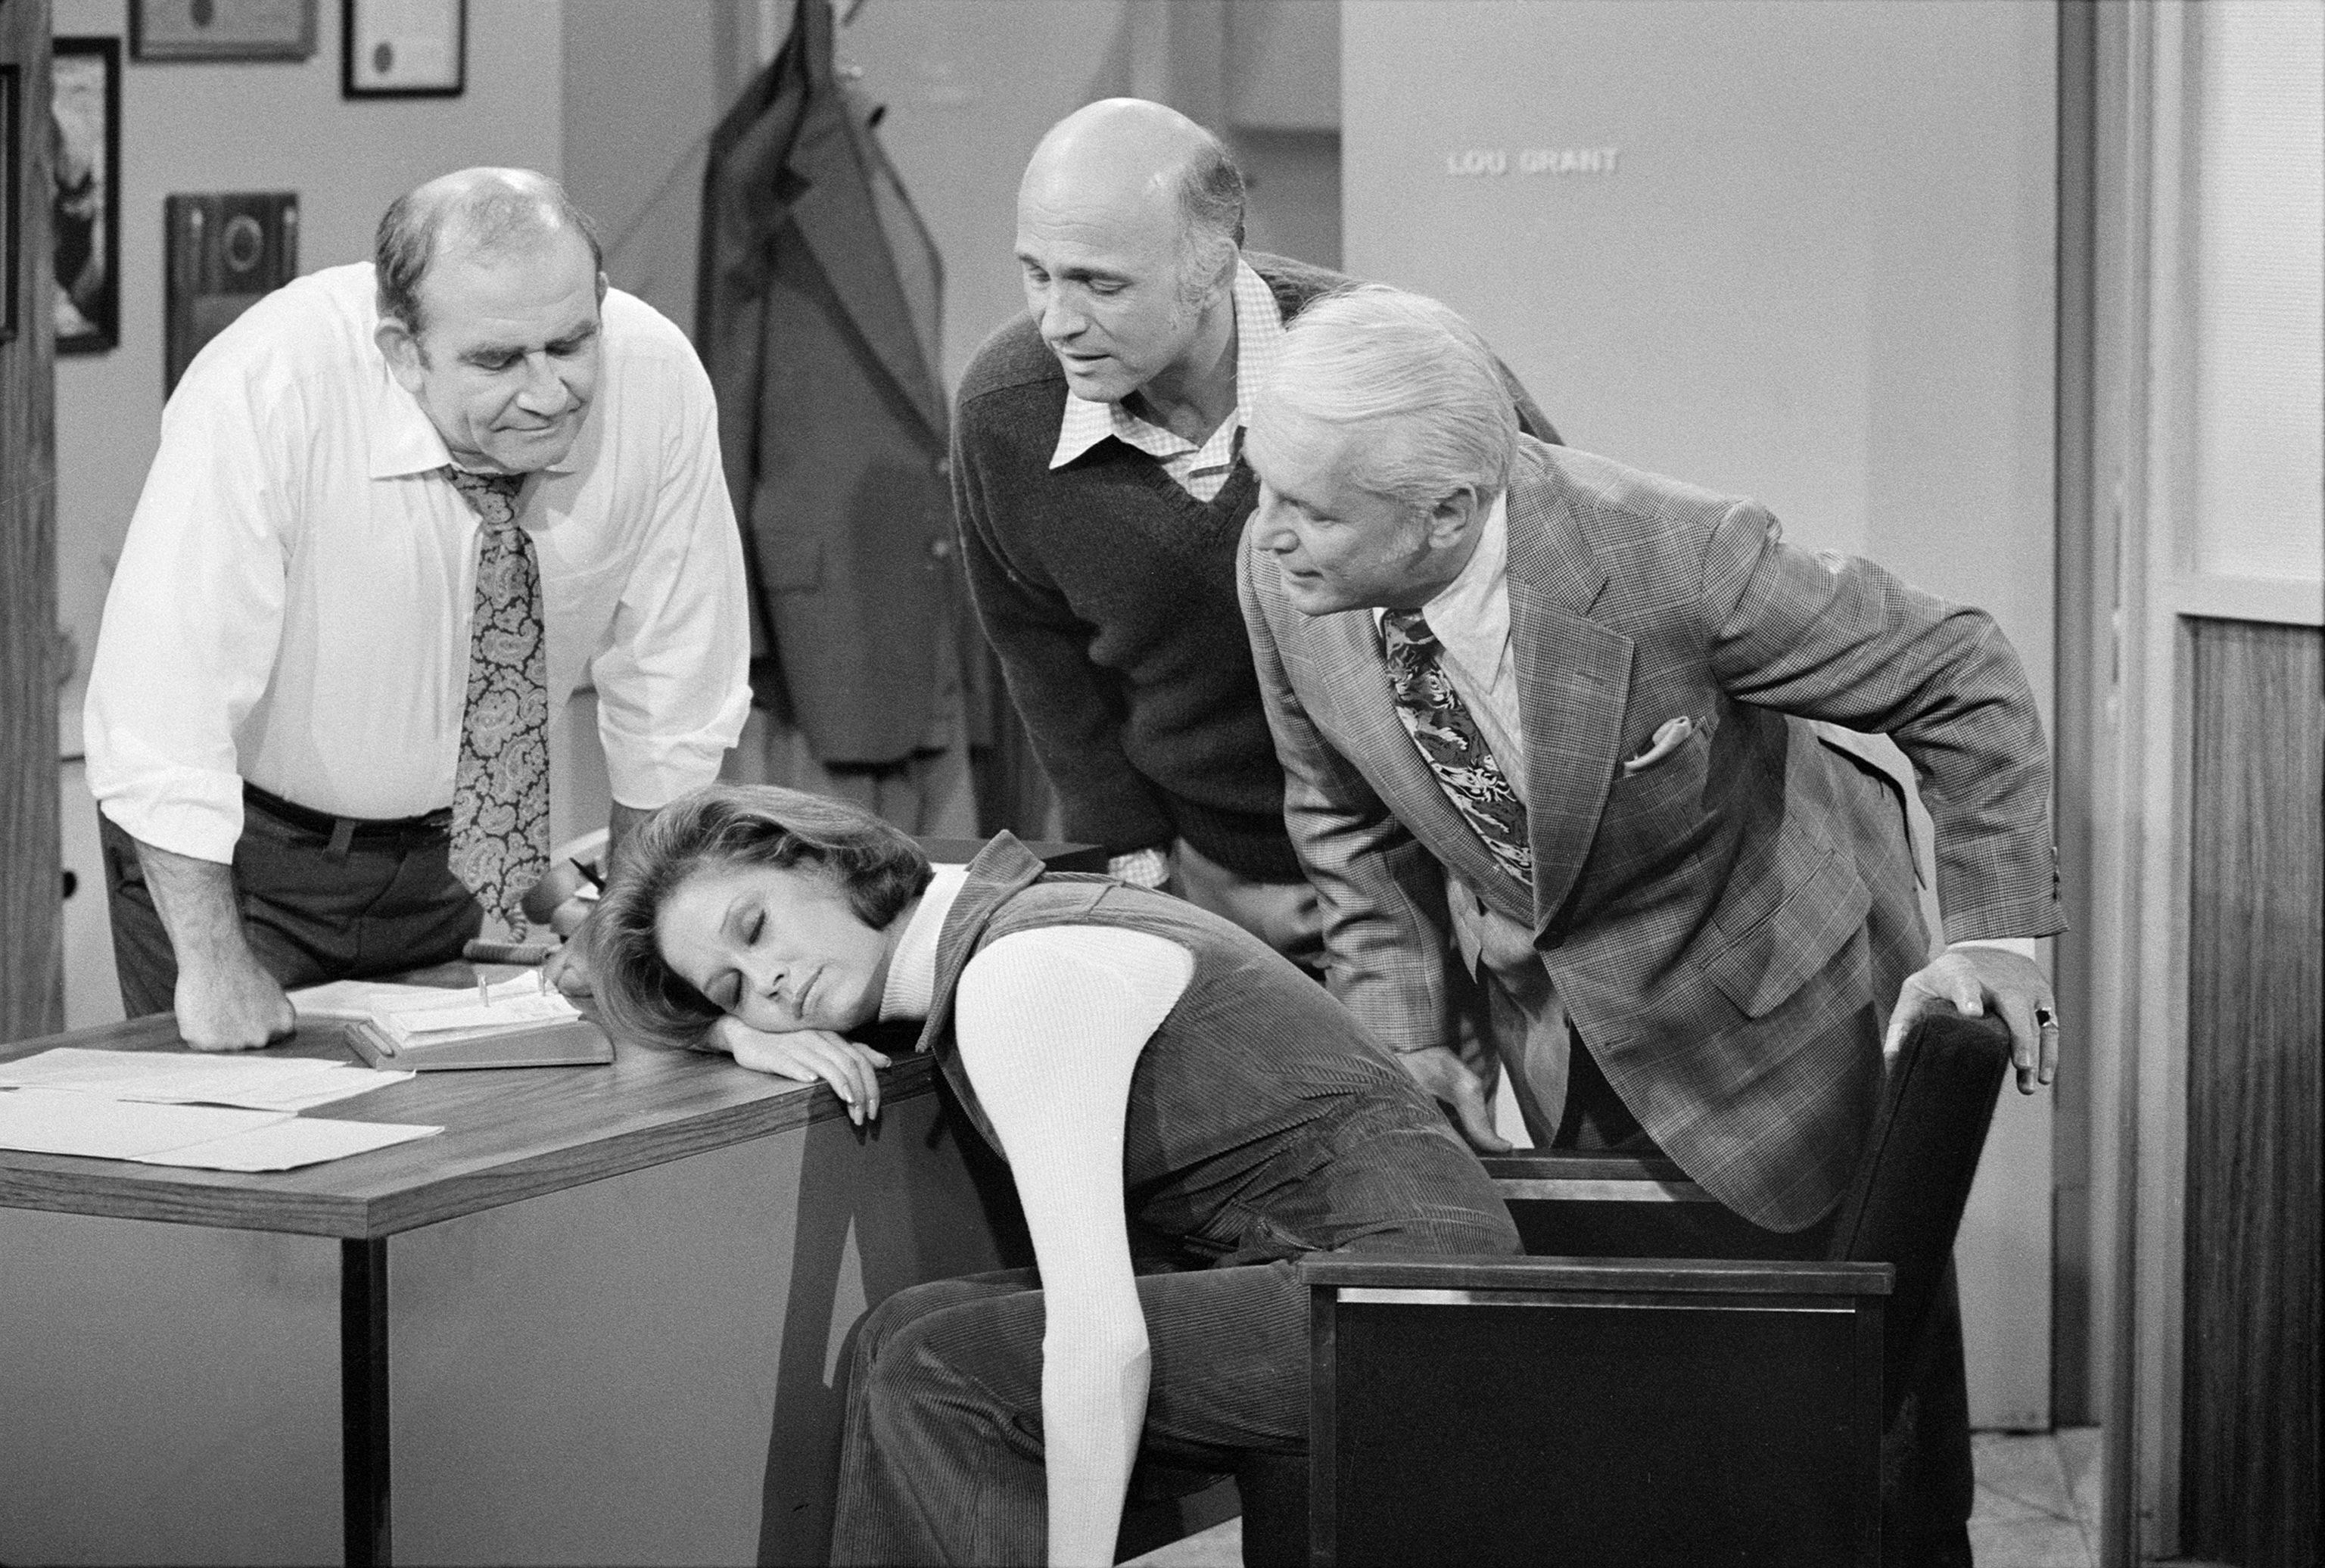 American actress Mary Tyler Moore (as Mary Richards) sleeps on a desk in a scene from the 'Mary's Insomnia' episode of 'The Mary Tyler Moore Show' (also known as 'Mary Tyler Moore'), Los Angeles, California, September 17, 1976. Gathered around her are, fron left, fellow actors Ed Asner (as Lou Grant, on whose desk Mary sleeps), Gavin MacLeod (as Murray Slaughter), and Ted Knight (1923 - 1986) (as Ted Baxter). The episode originally aired on December 4, 1976 (Photo by CBS Photo Archive/Getty Images)